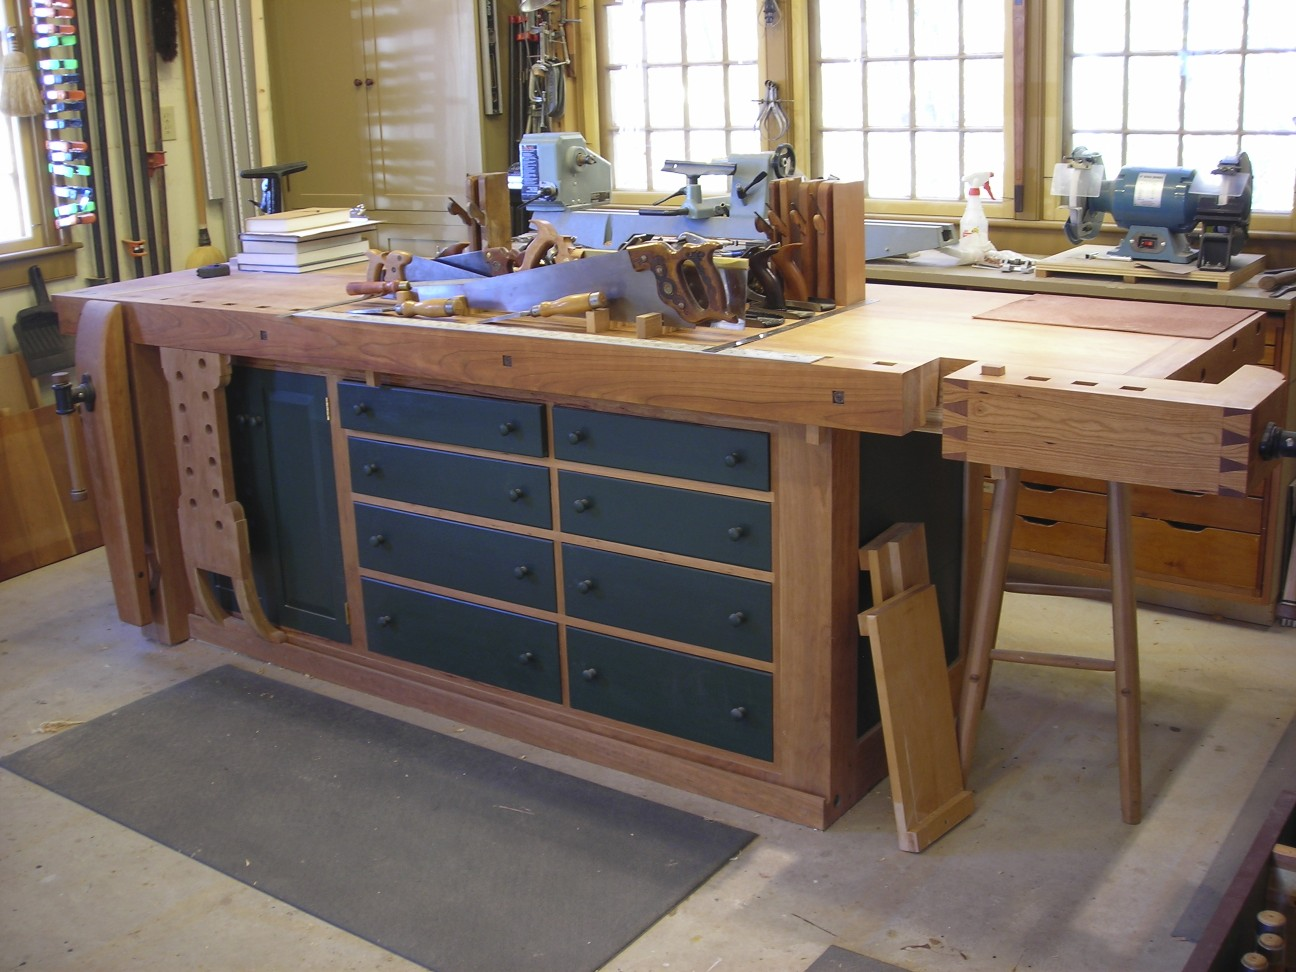 Wonderful By Glen D Huey Pages From The December 2007 Issue Buy This Issue Now When I Started Work At Popular Woodworking Magazine My Workbench Was A Couple Storage Cabinet Shaker Workbench  Popular